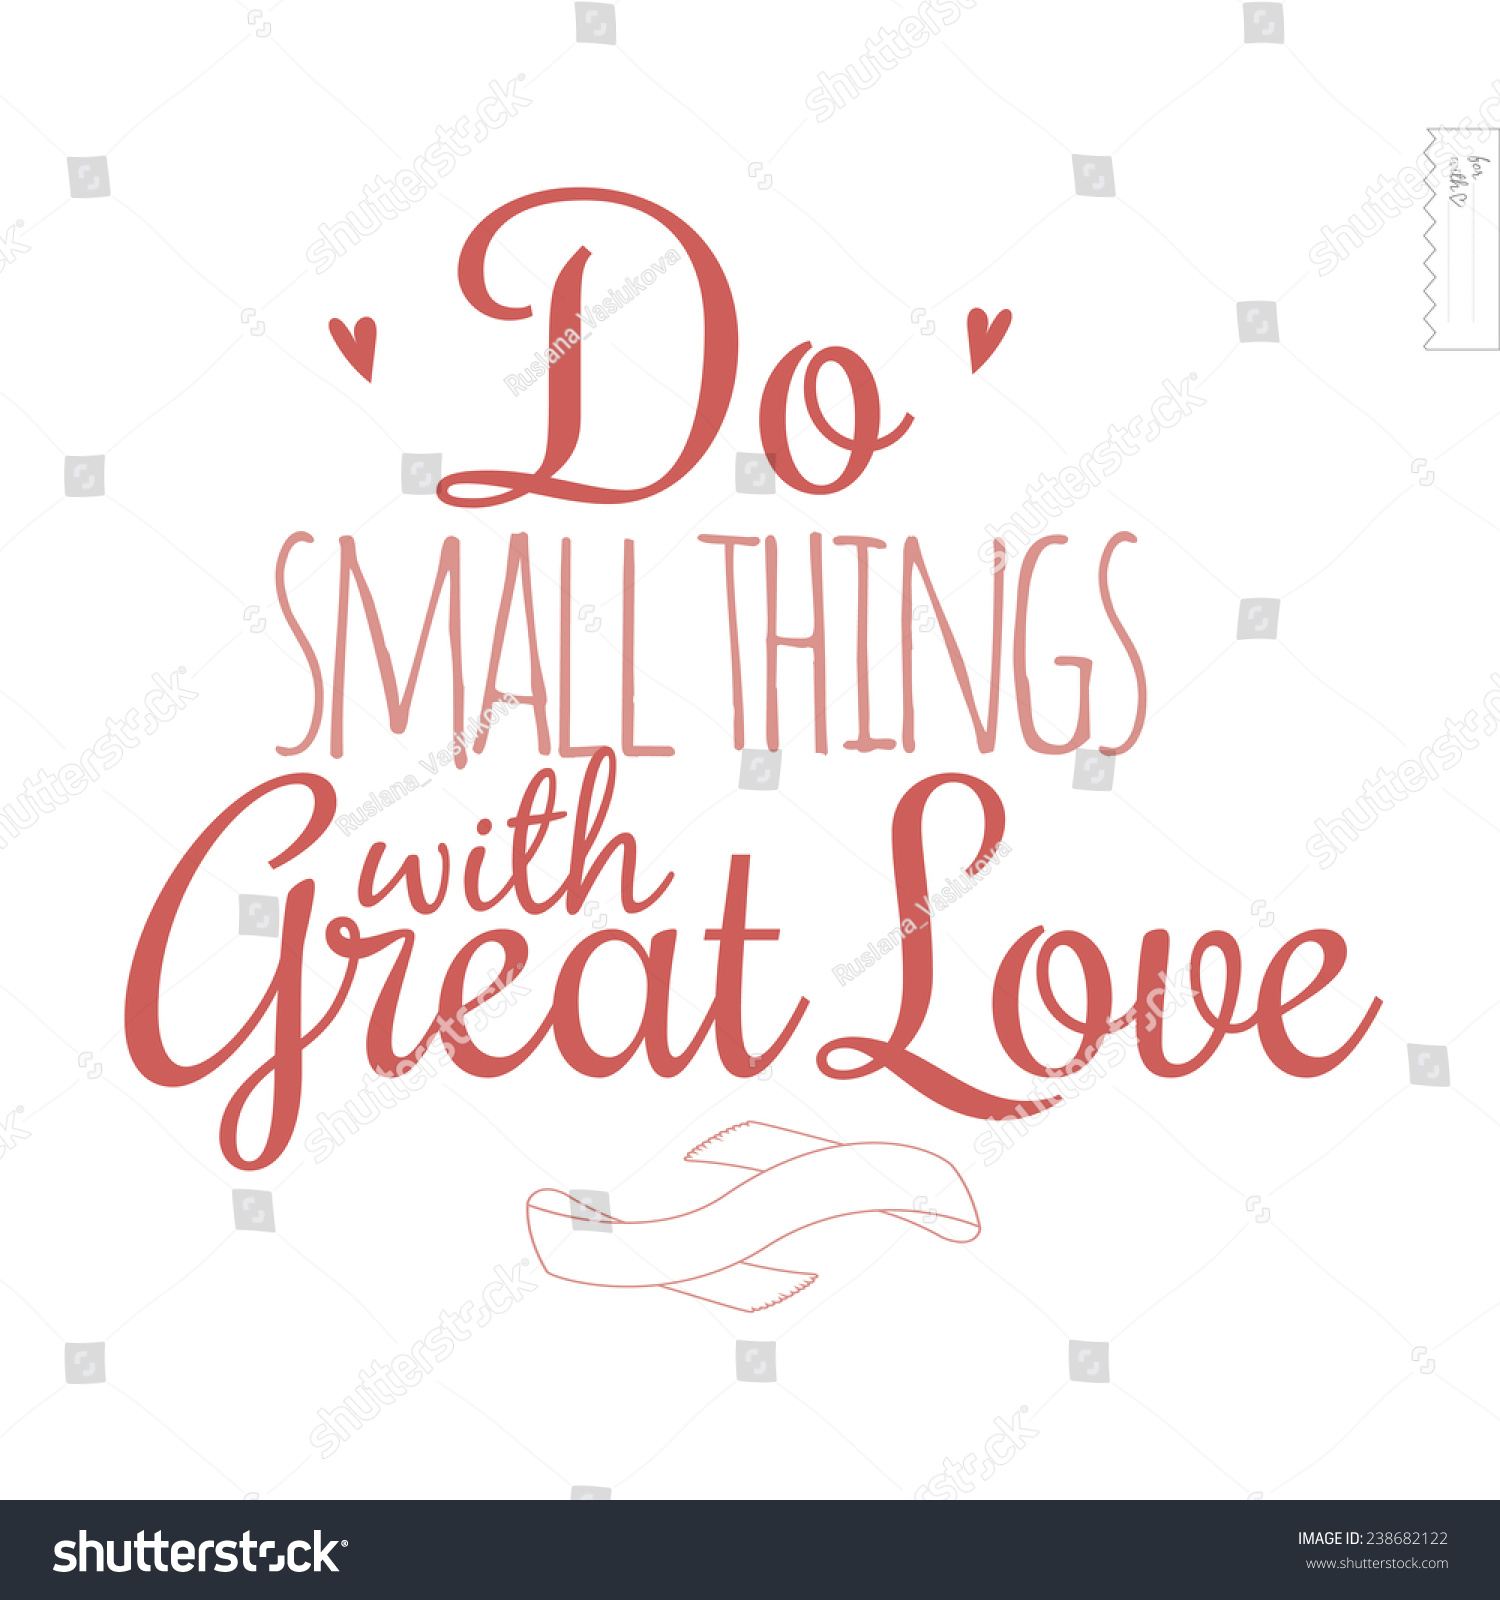 Posters With Quotes About Love : Collection Love Posters With Quotes Notarnyc